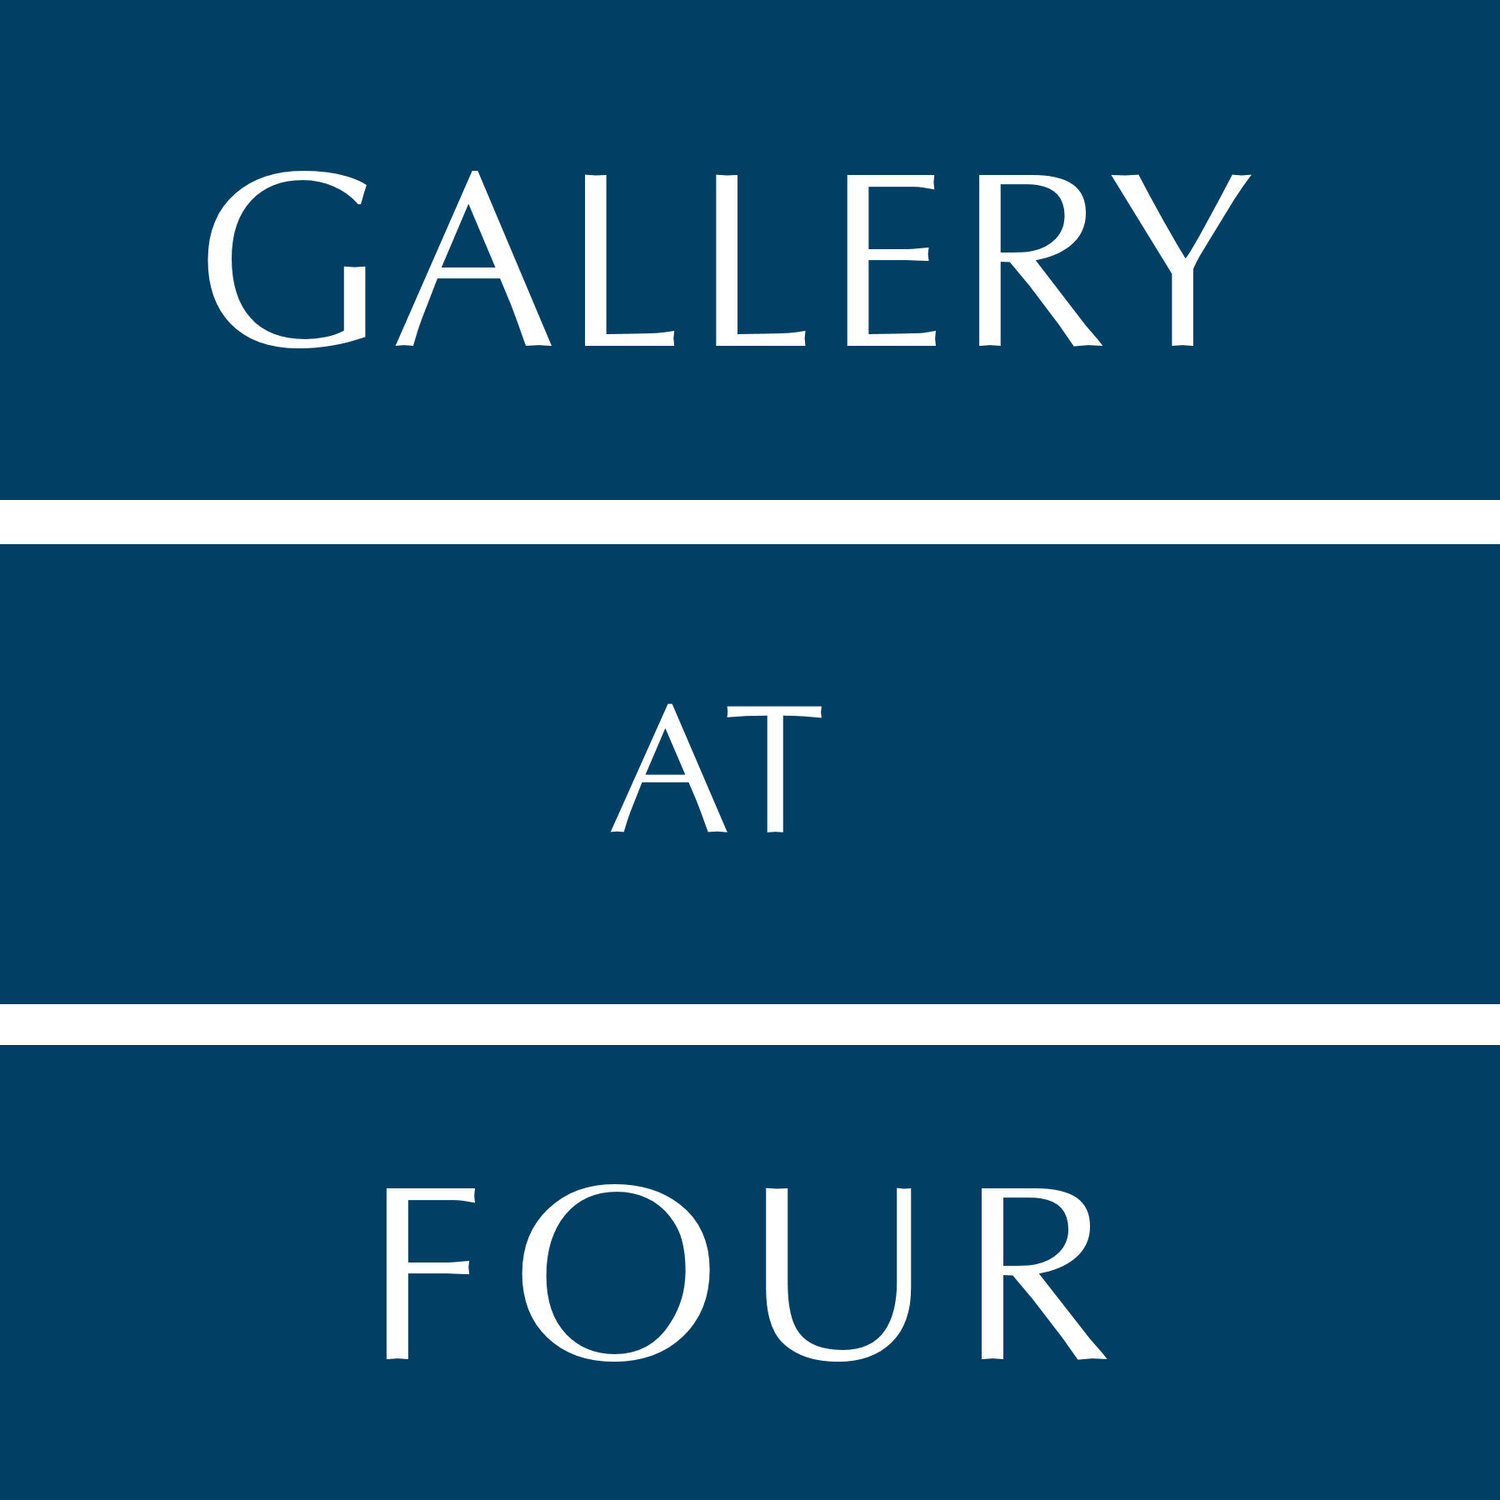 Gallery at FOUR